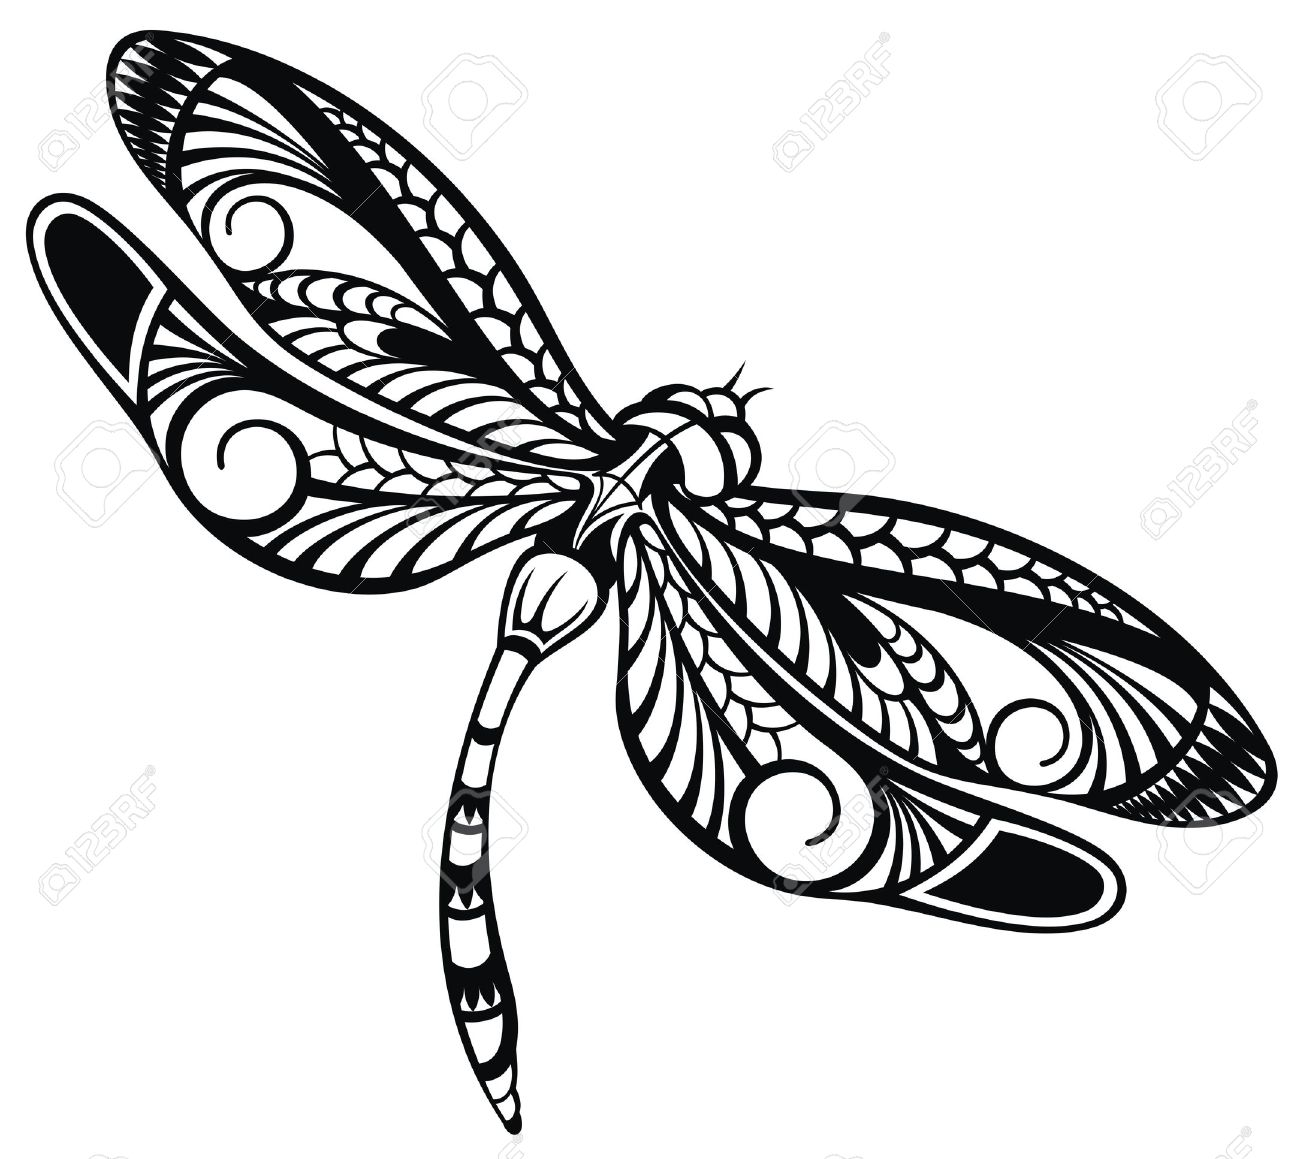 9,180 Dragonfly Cliparts, Stock Vector And Royalty Free Dragonfly ...